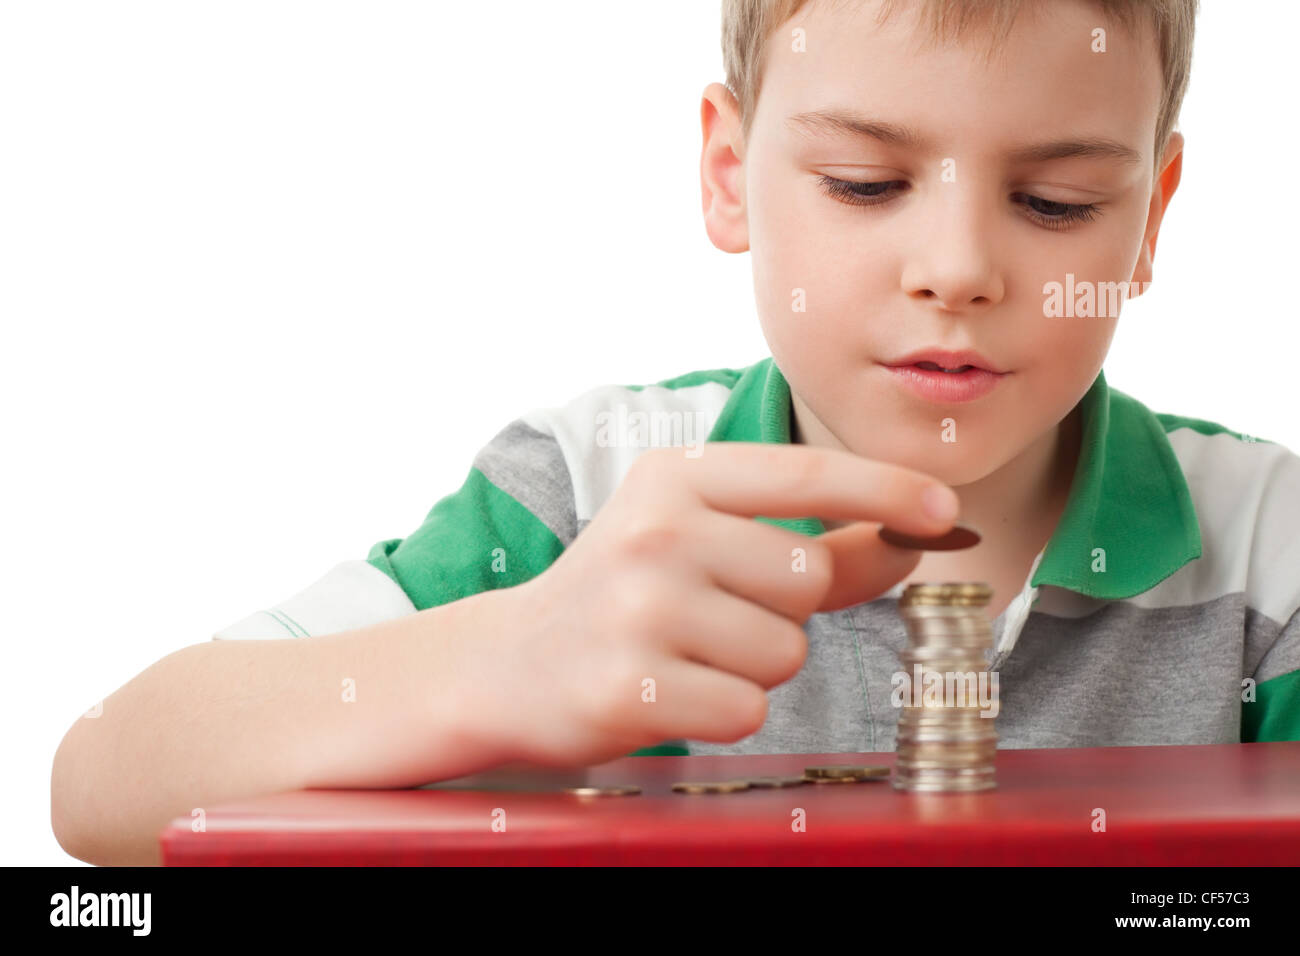 Best Brokers for Penny Stocks Trading